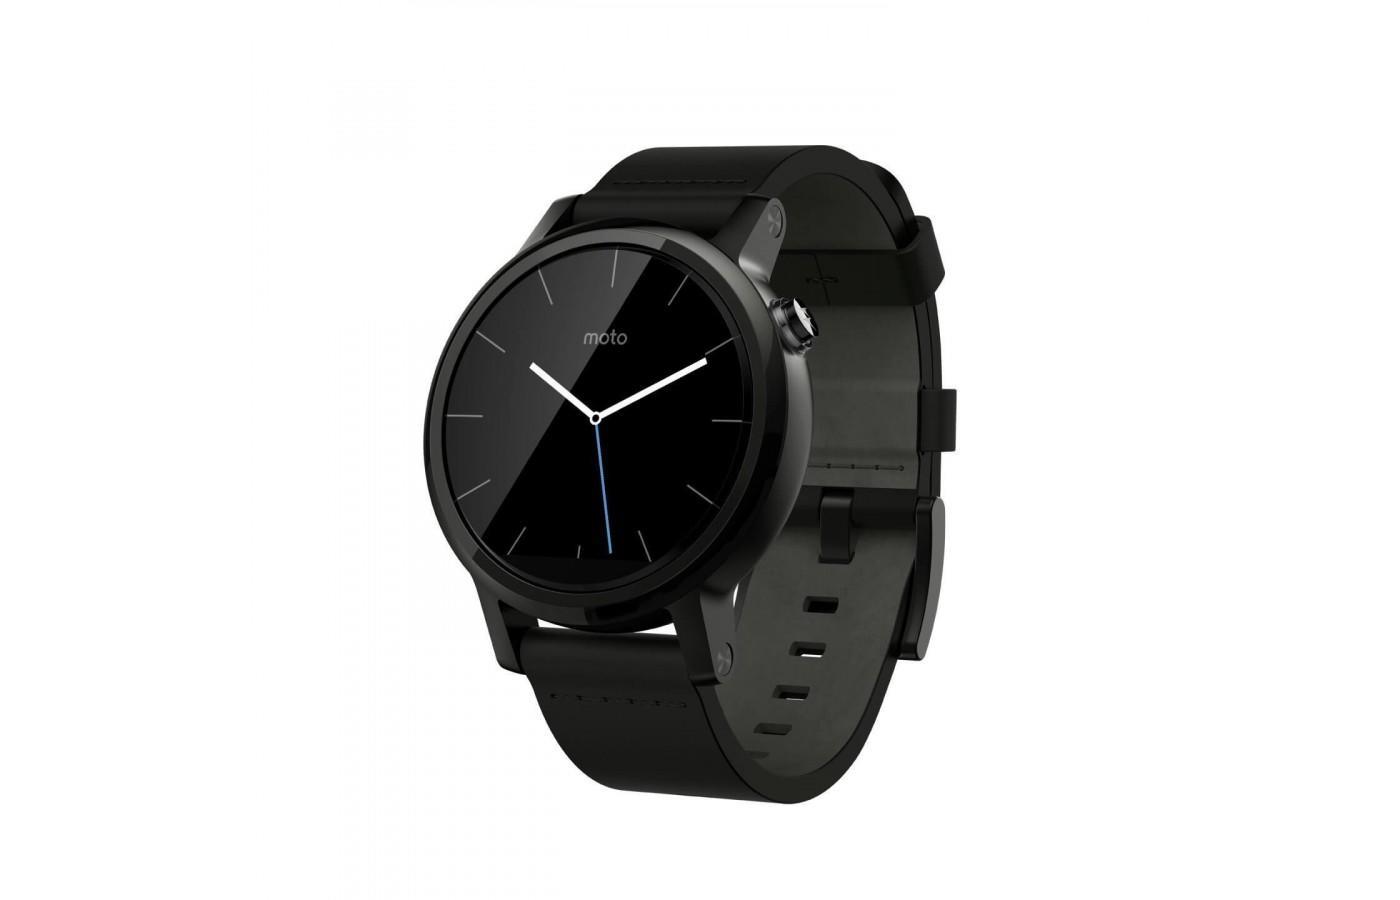 the Motorola Moto 360 (2nd Gen) is both a smartwatch and a fitness tracker